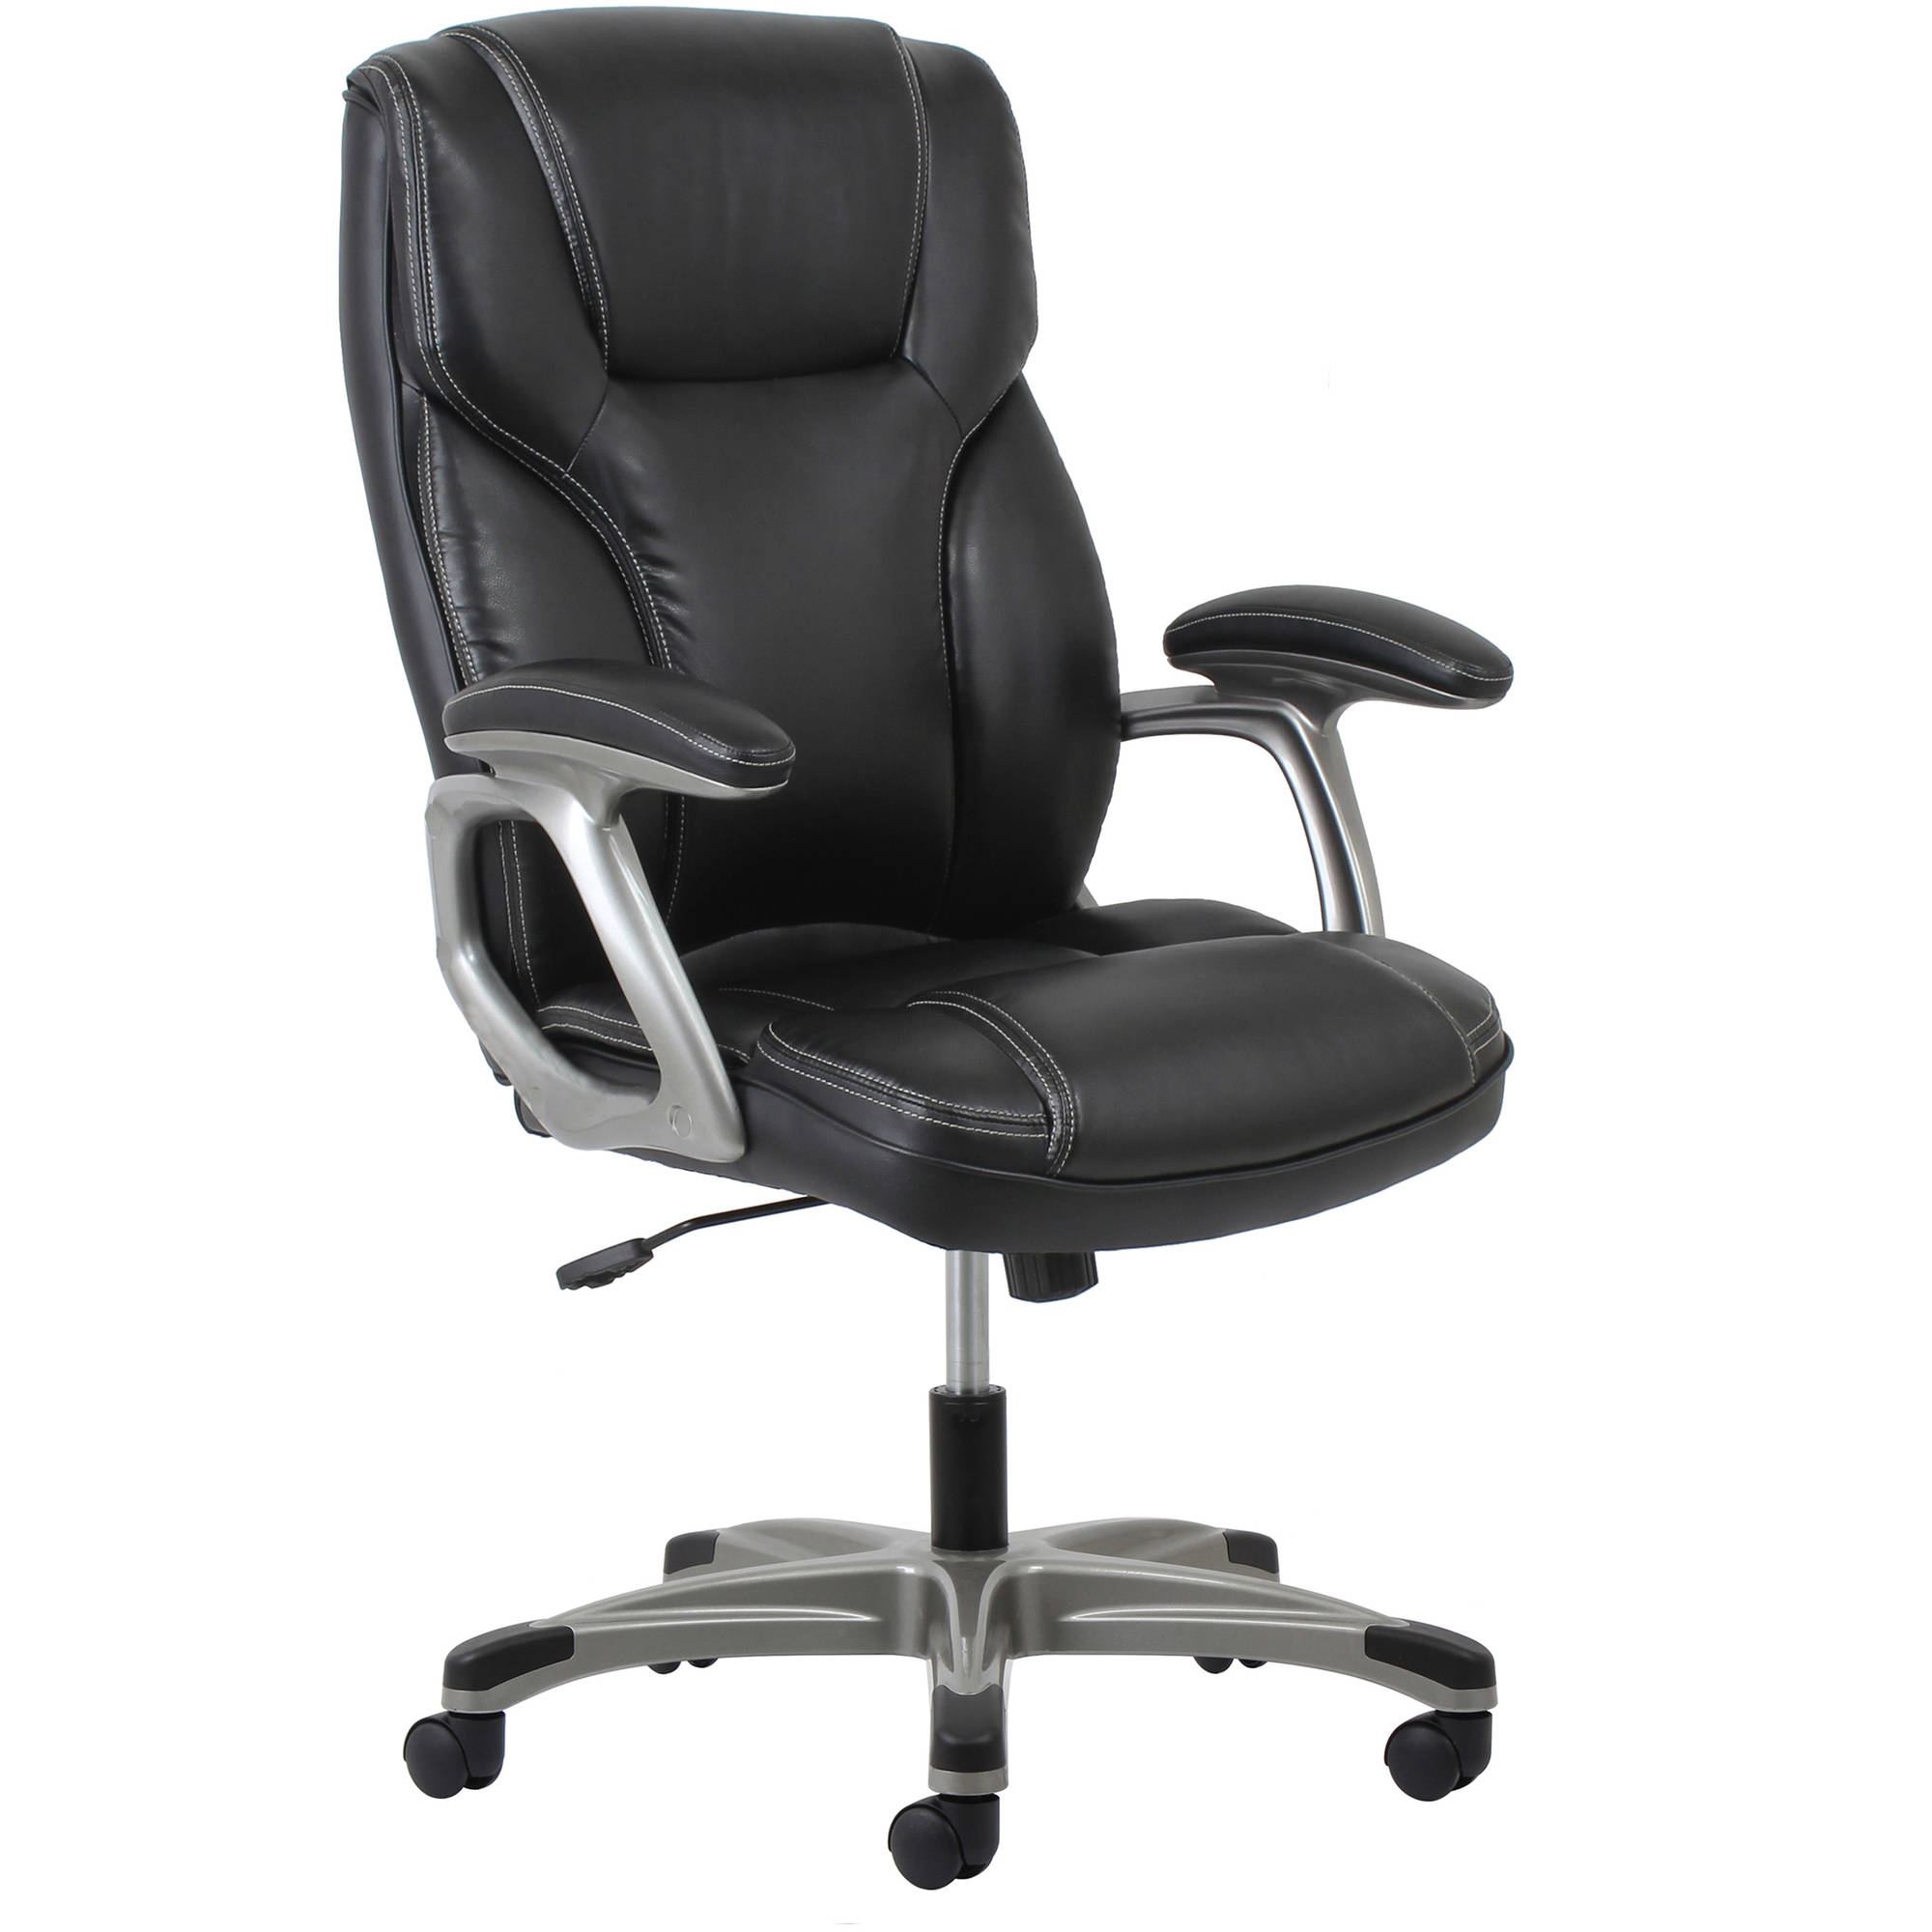 Essentials by OFM Ergonomic High-Back Leather Executive Office Chair with Arms, Black/Silver